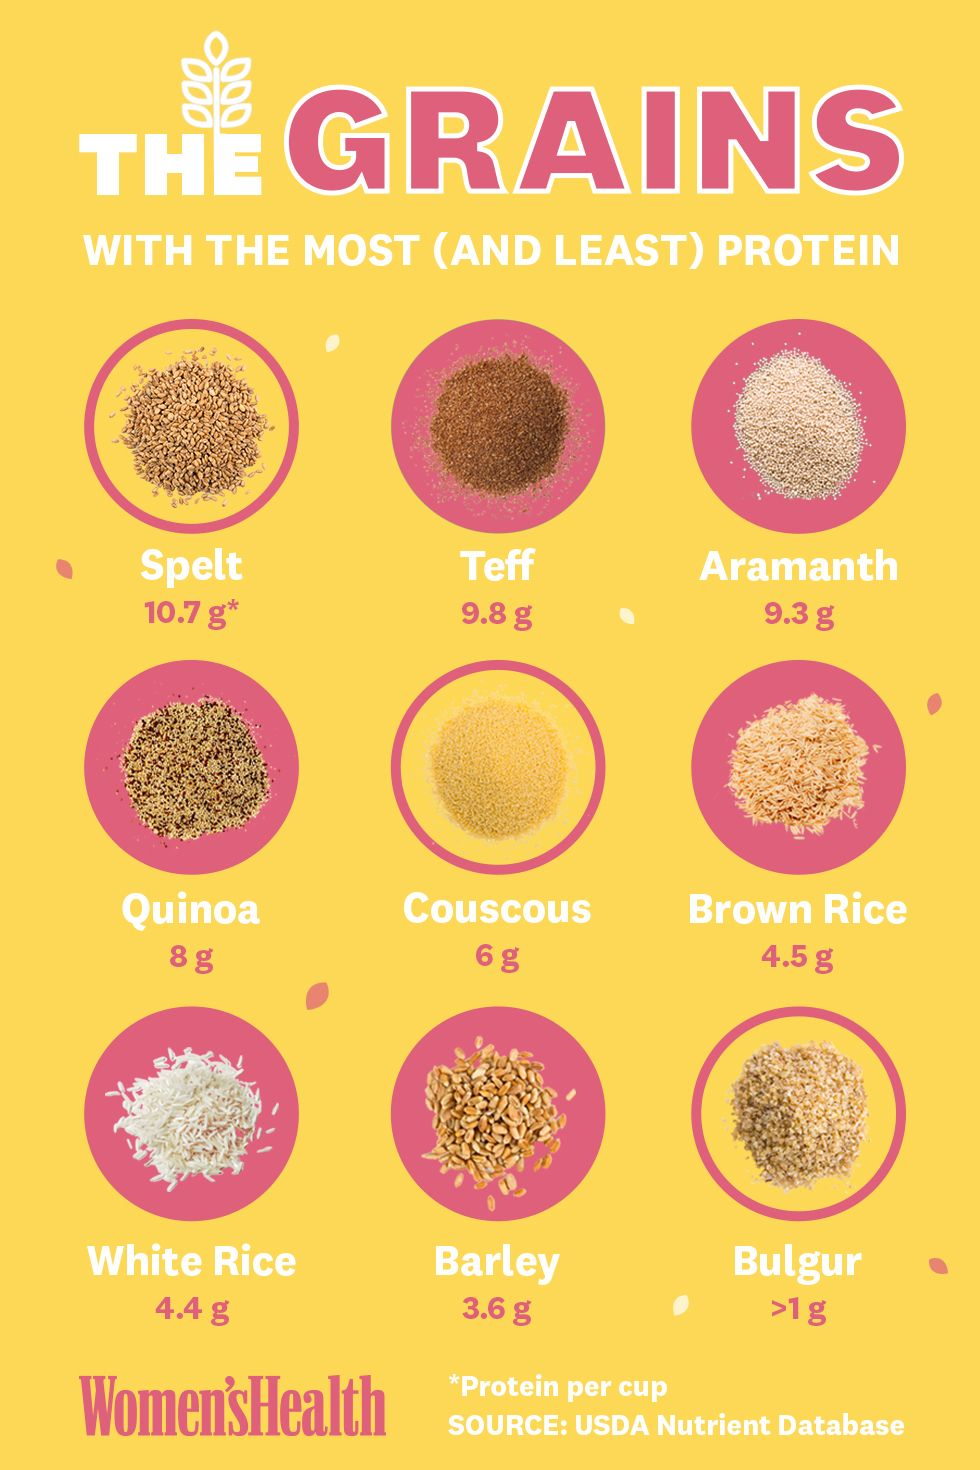 protein content of popular grains